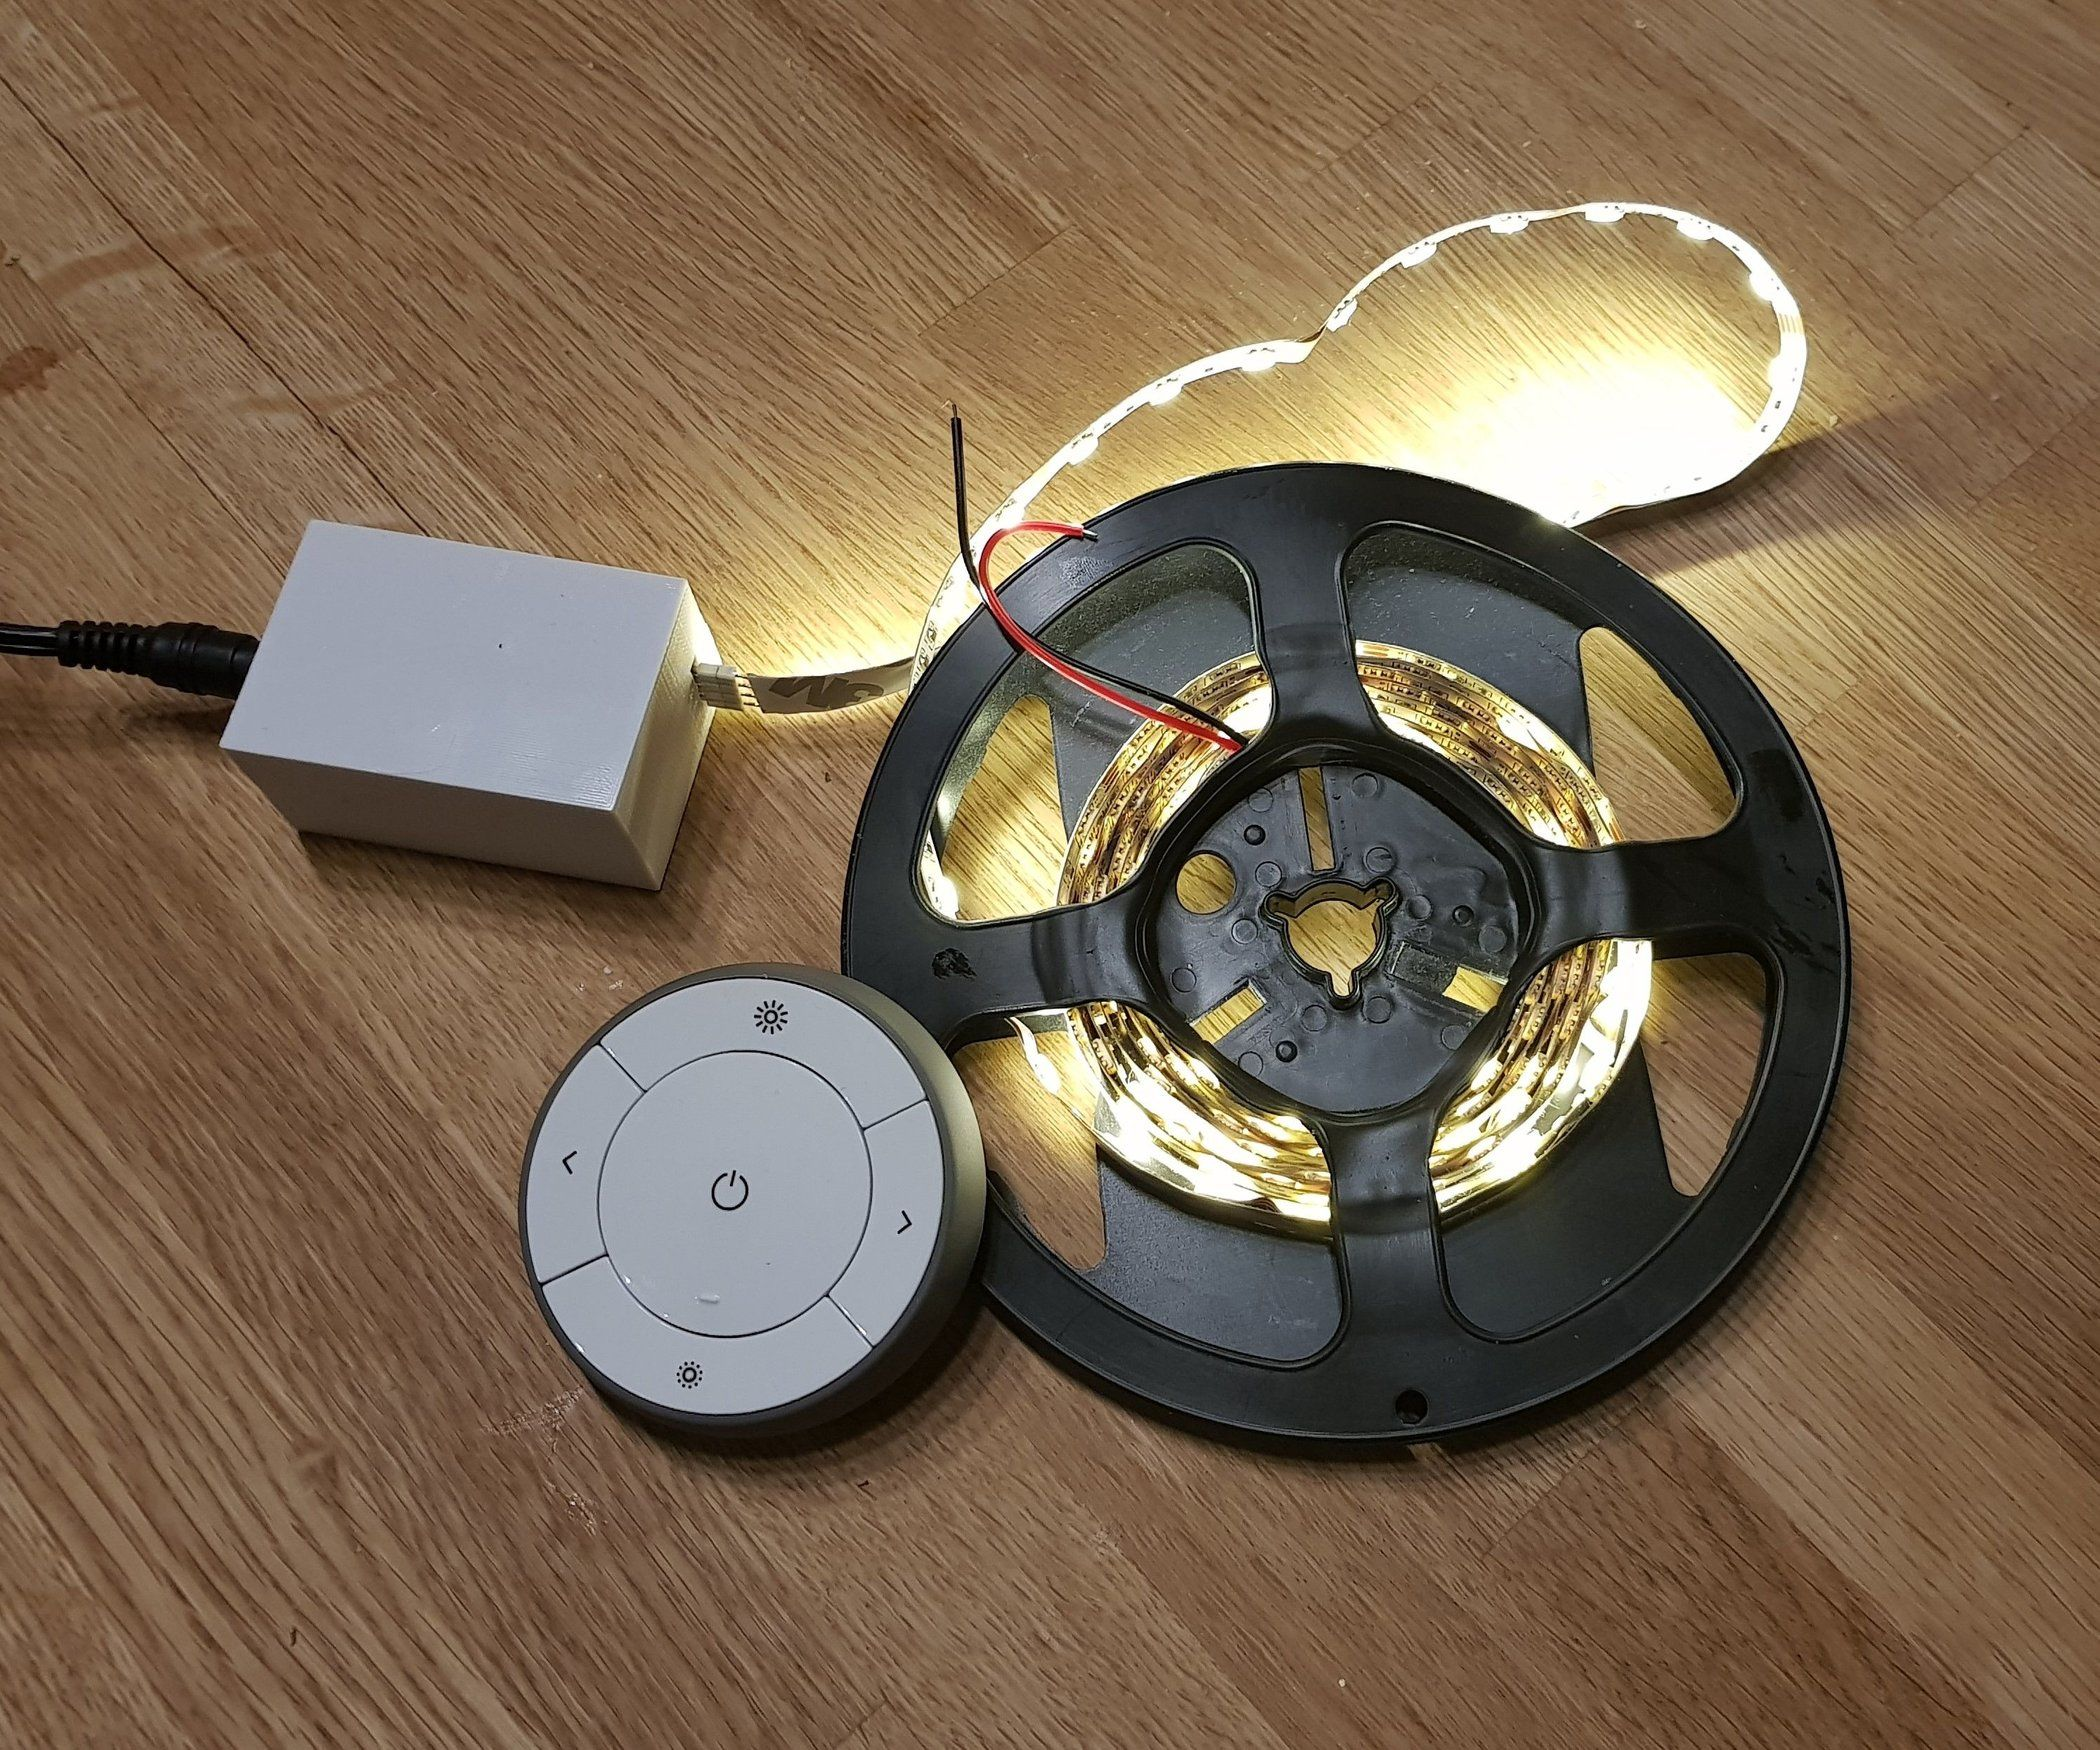 Zigbee Led Strip Dimmer Ikea Tradfri Hack Led Strip Lighting Lighting Hacks Zigbee